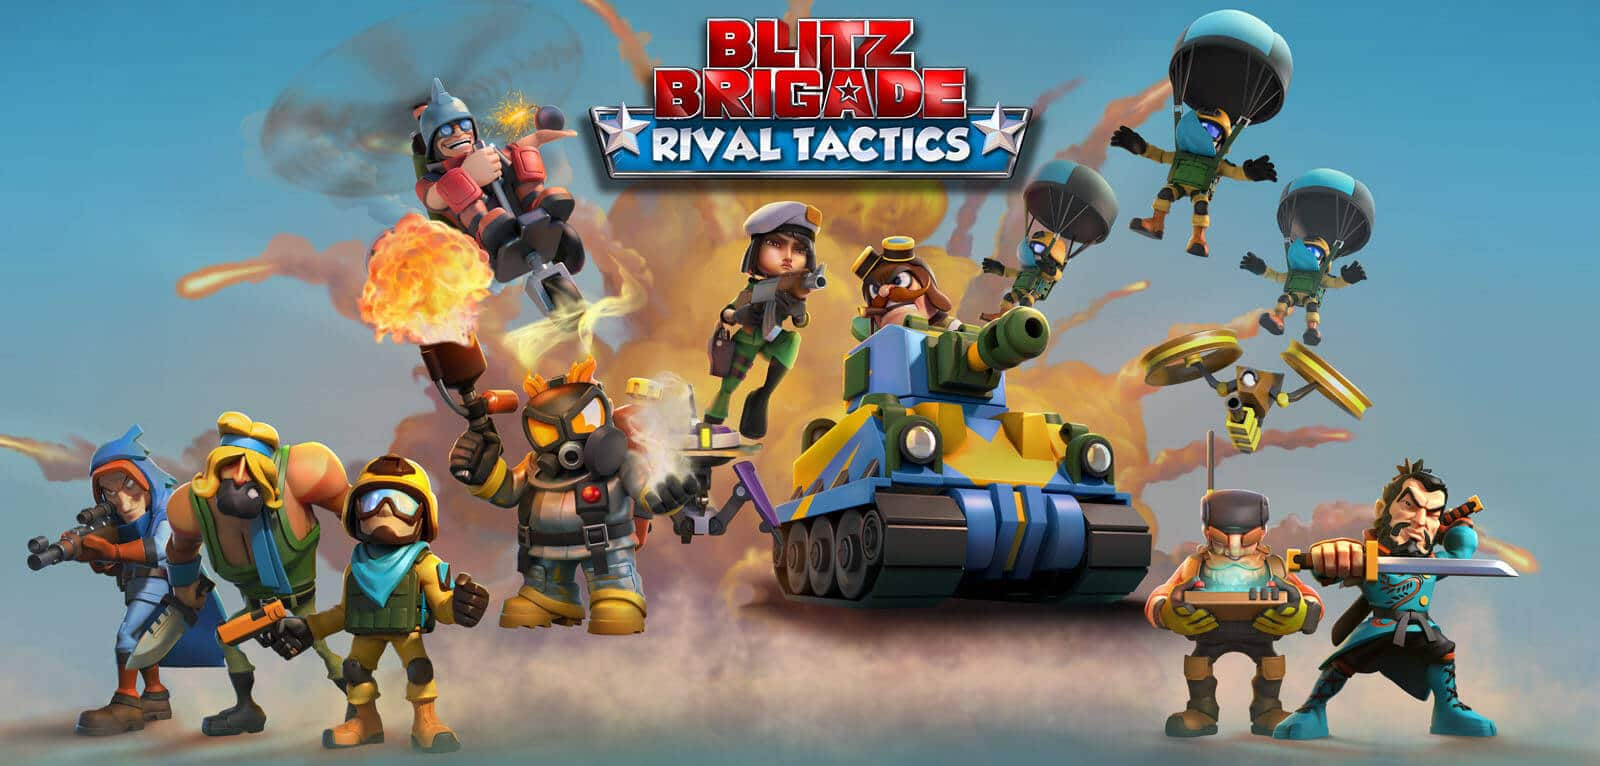 Blitz Brigade Android Game Review